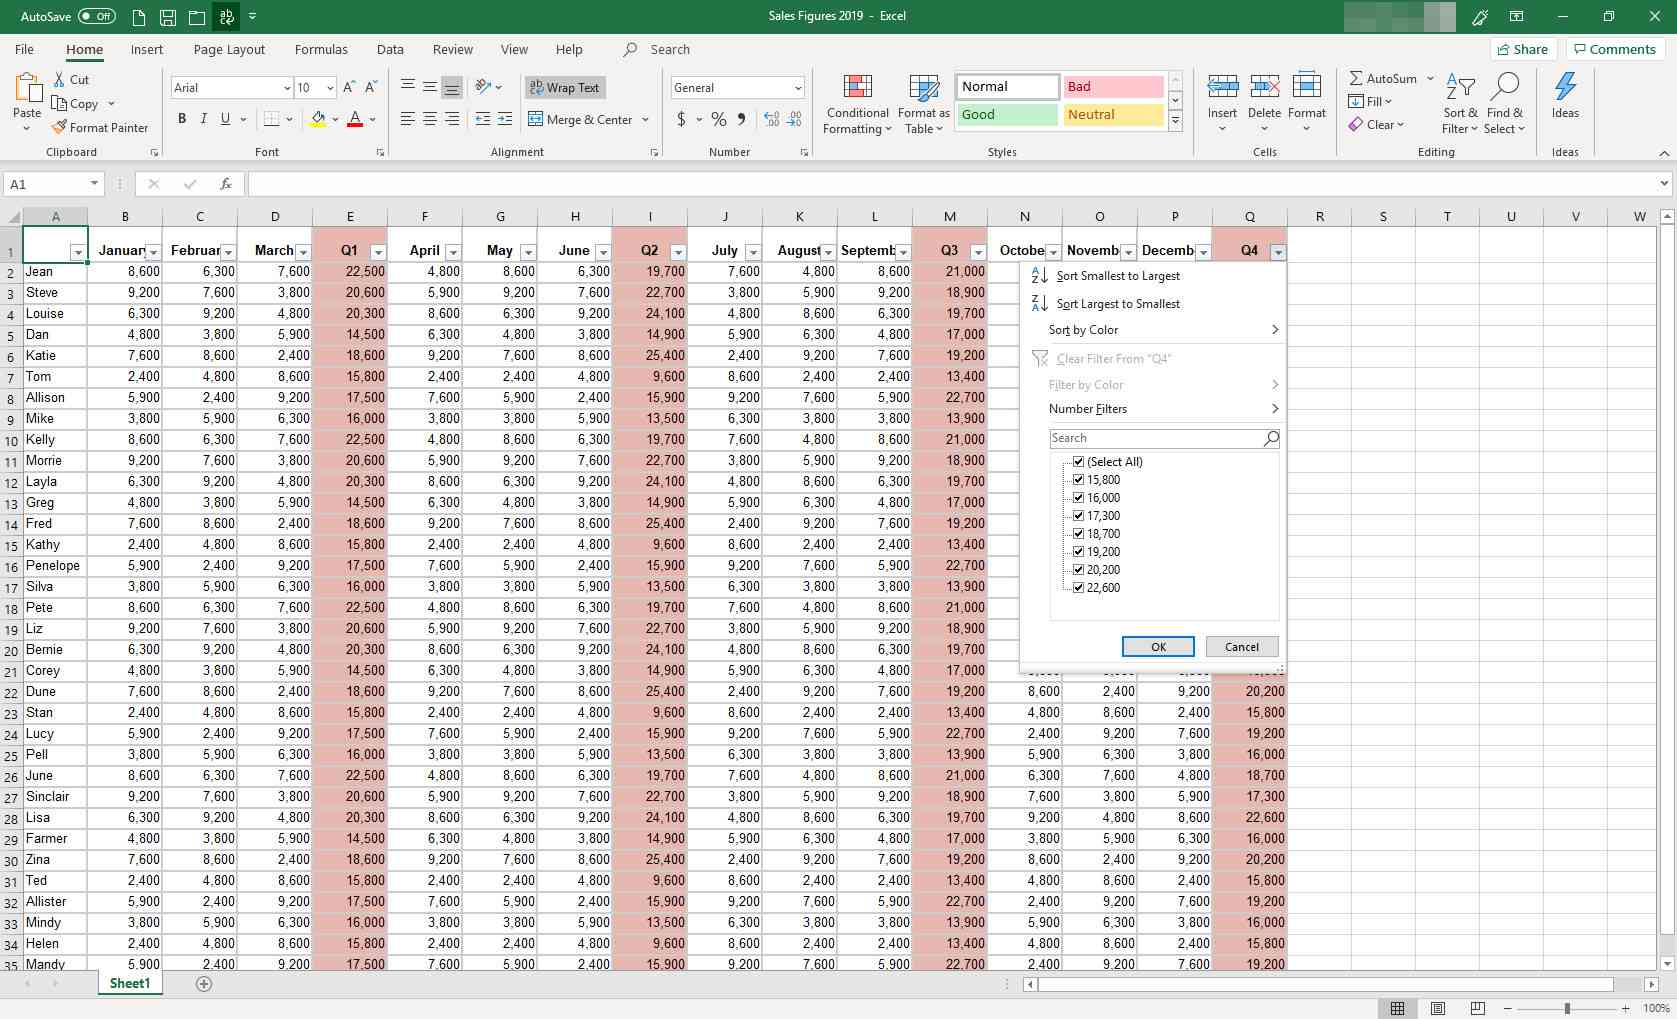 MS Excel with filtering dialog box displayed